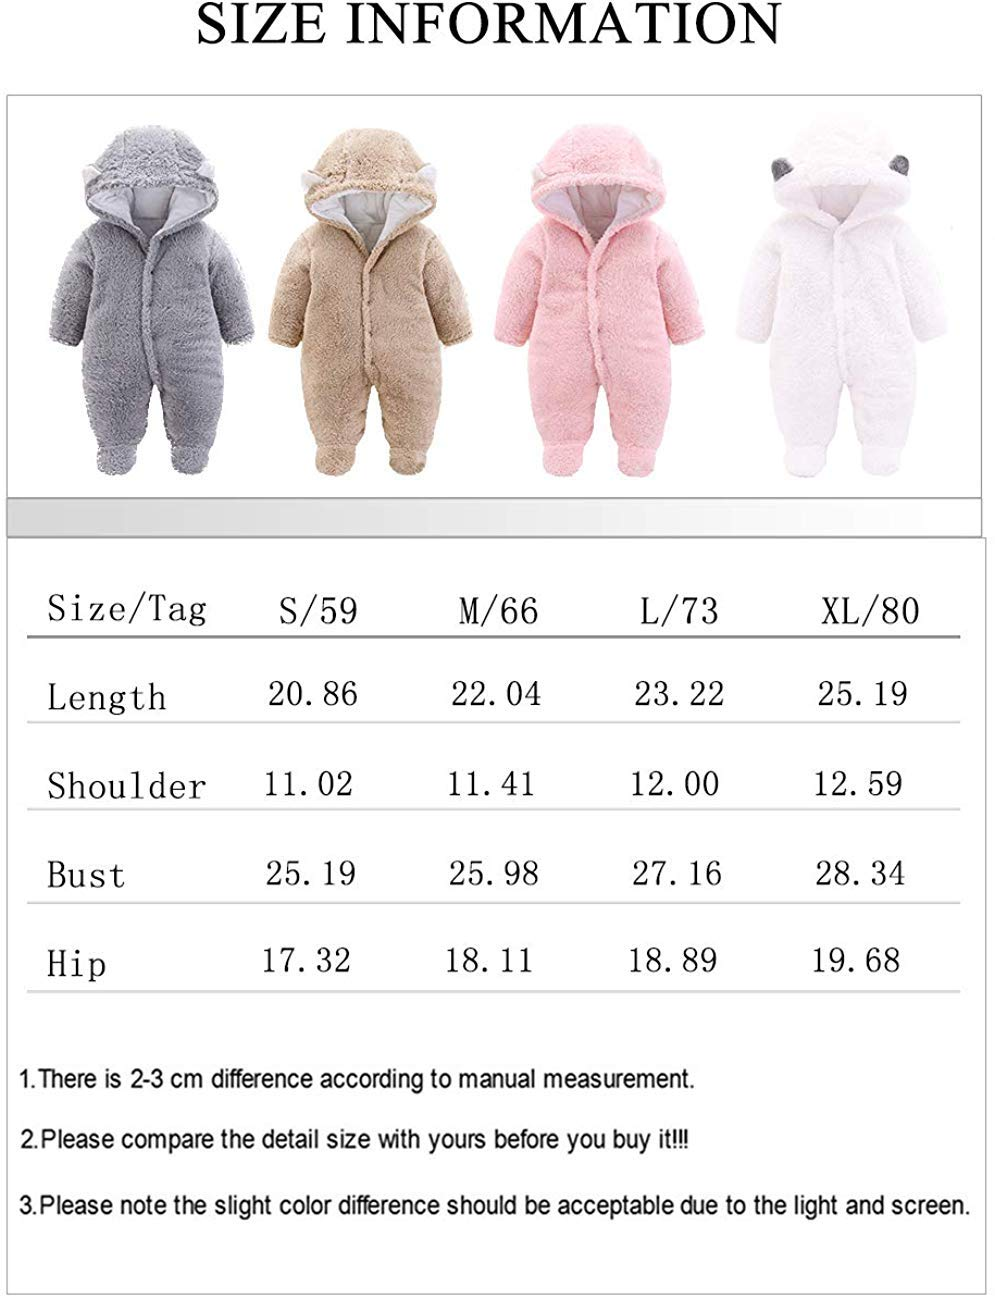 Khaki,0-3 M FIRENGOLI Unisex Baby Cloth Winter Coats Cute Newborn Infant Jumpsuit Snowsuit Bodysuits